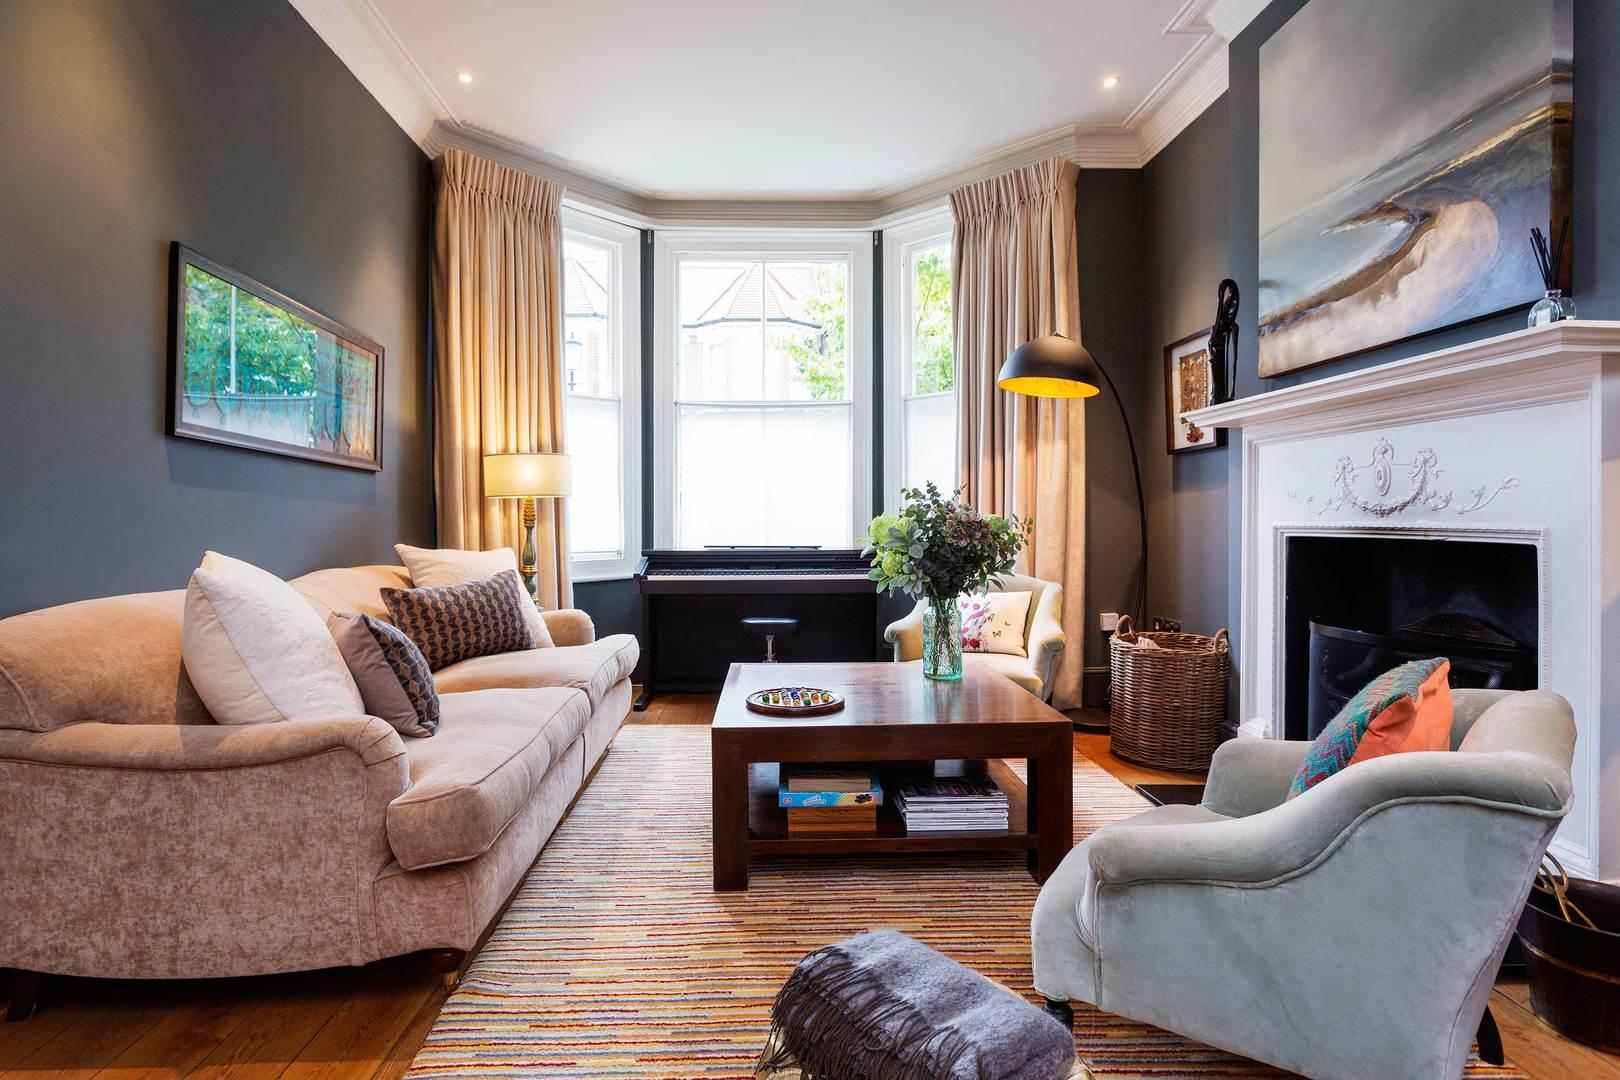 Property Image 2 - Stylish Townhouse in Trendy Notting Hill Neighbourhood